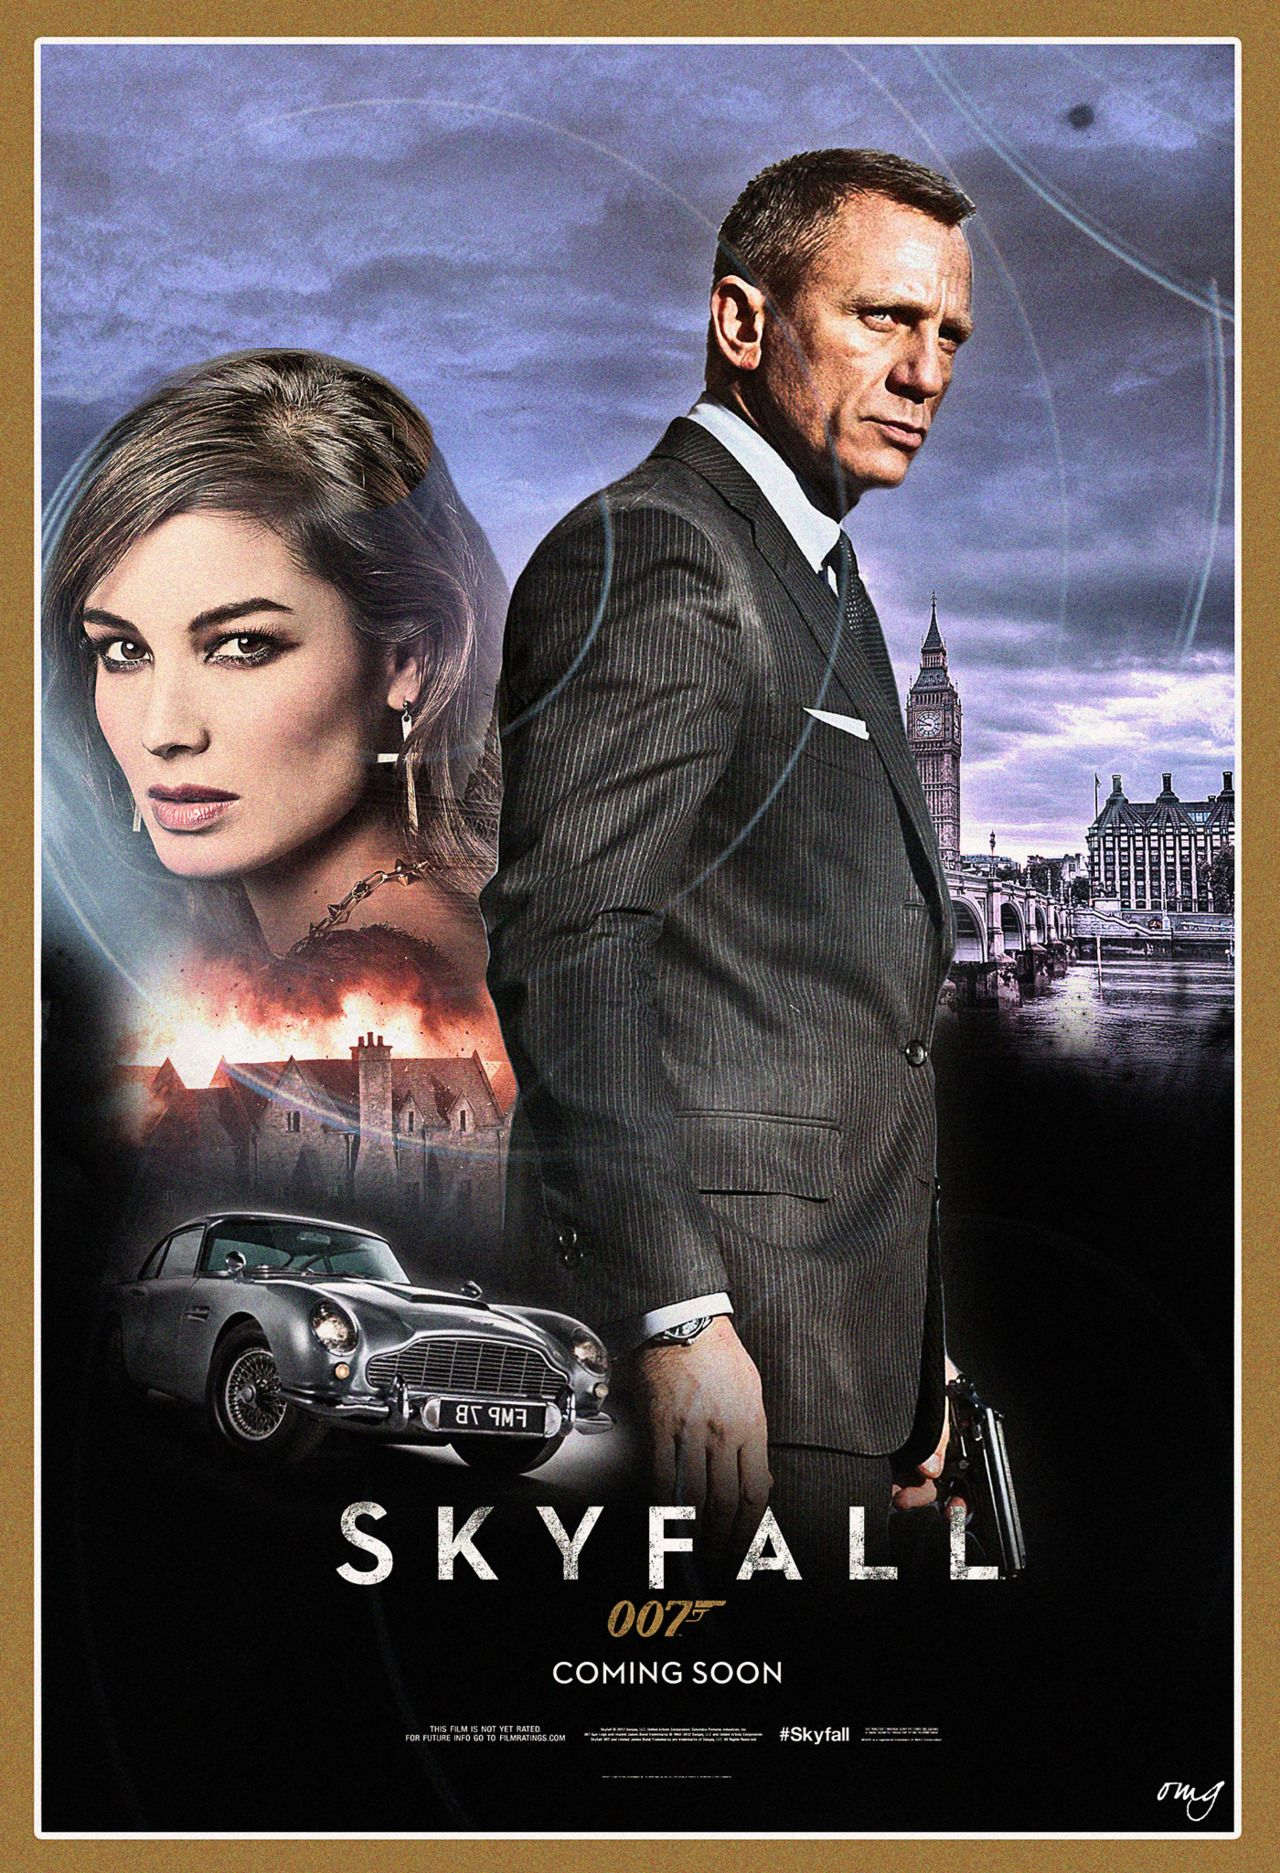 Skyfall Poster Art With Images Bond Movies James Bond Movies